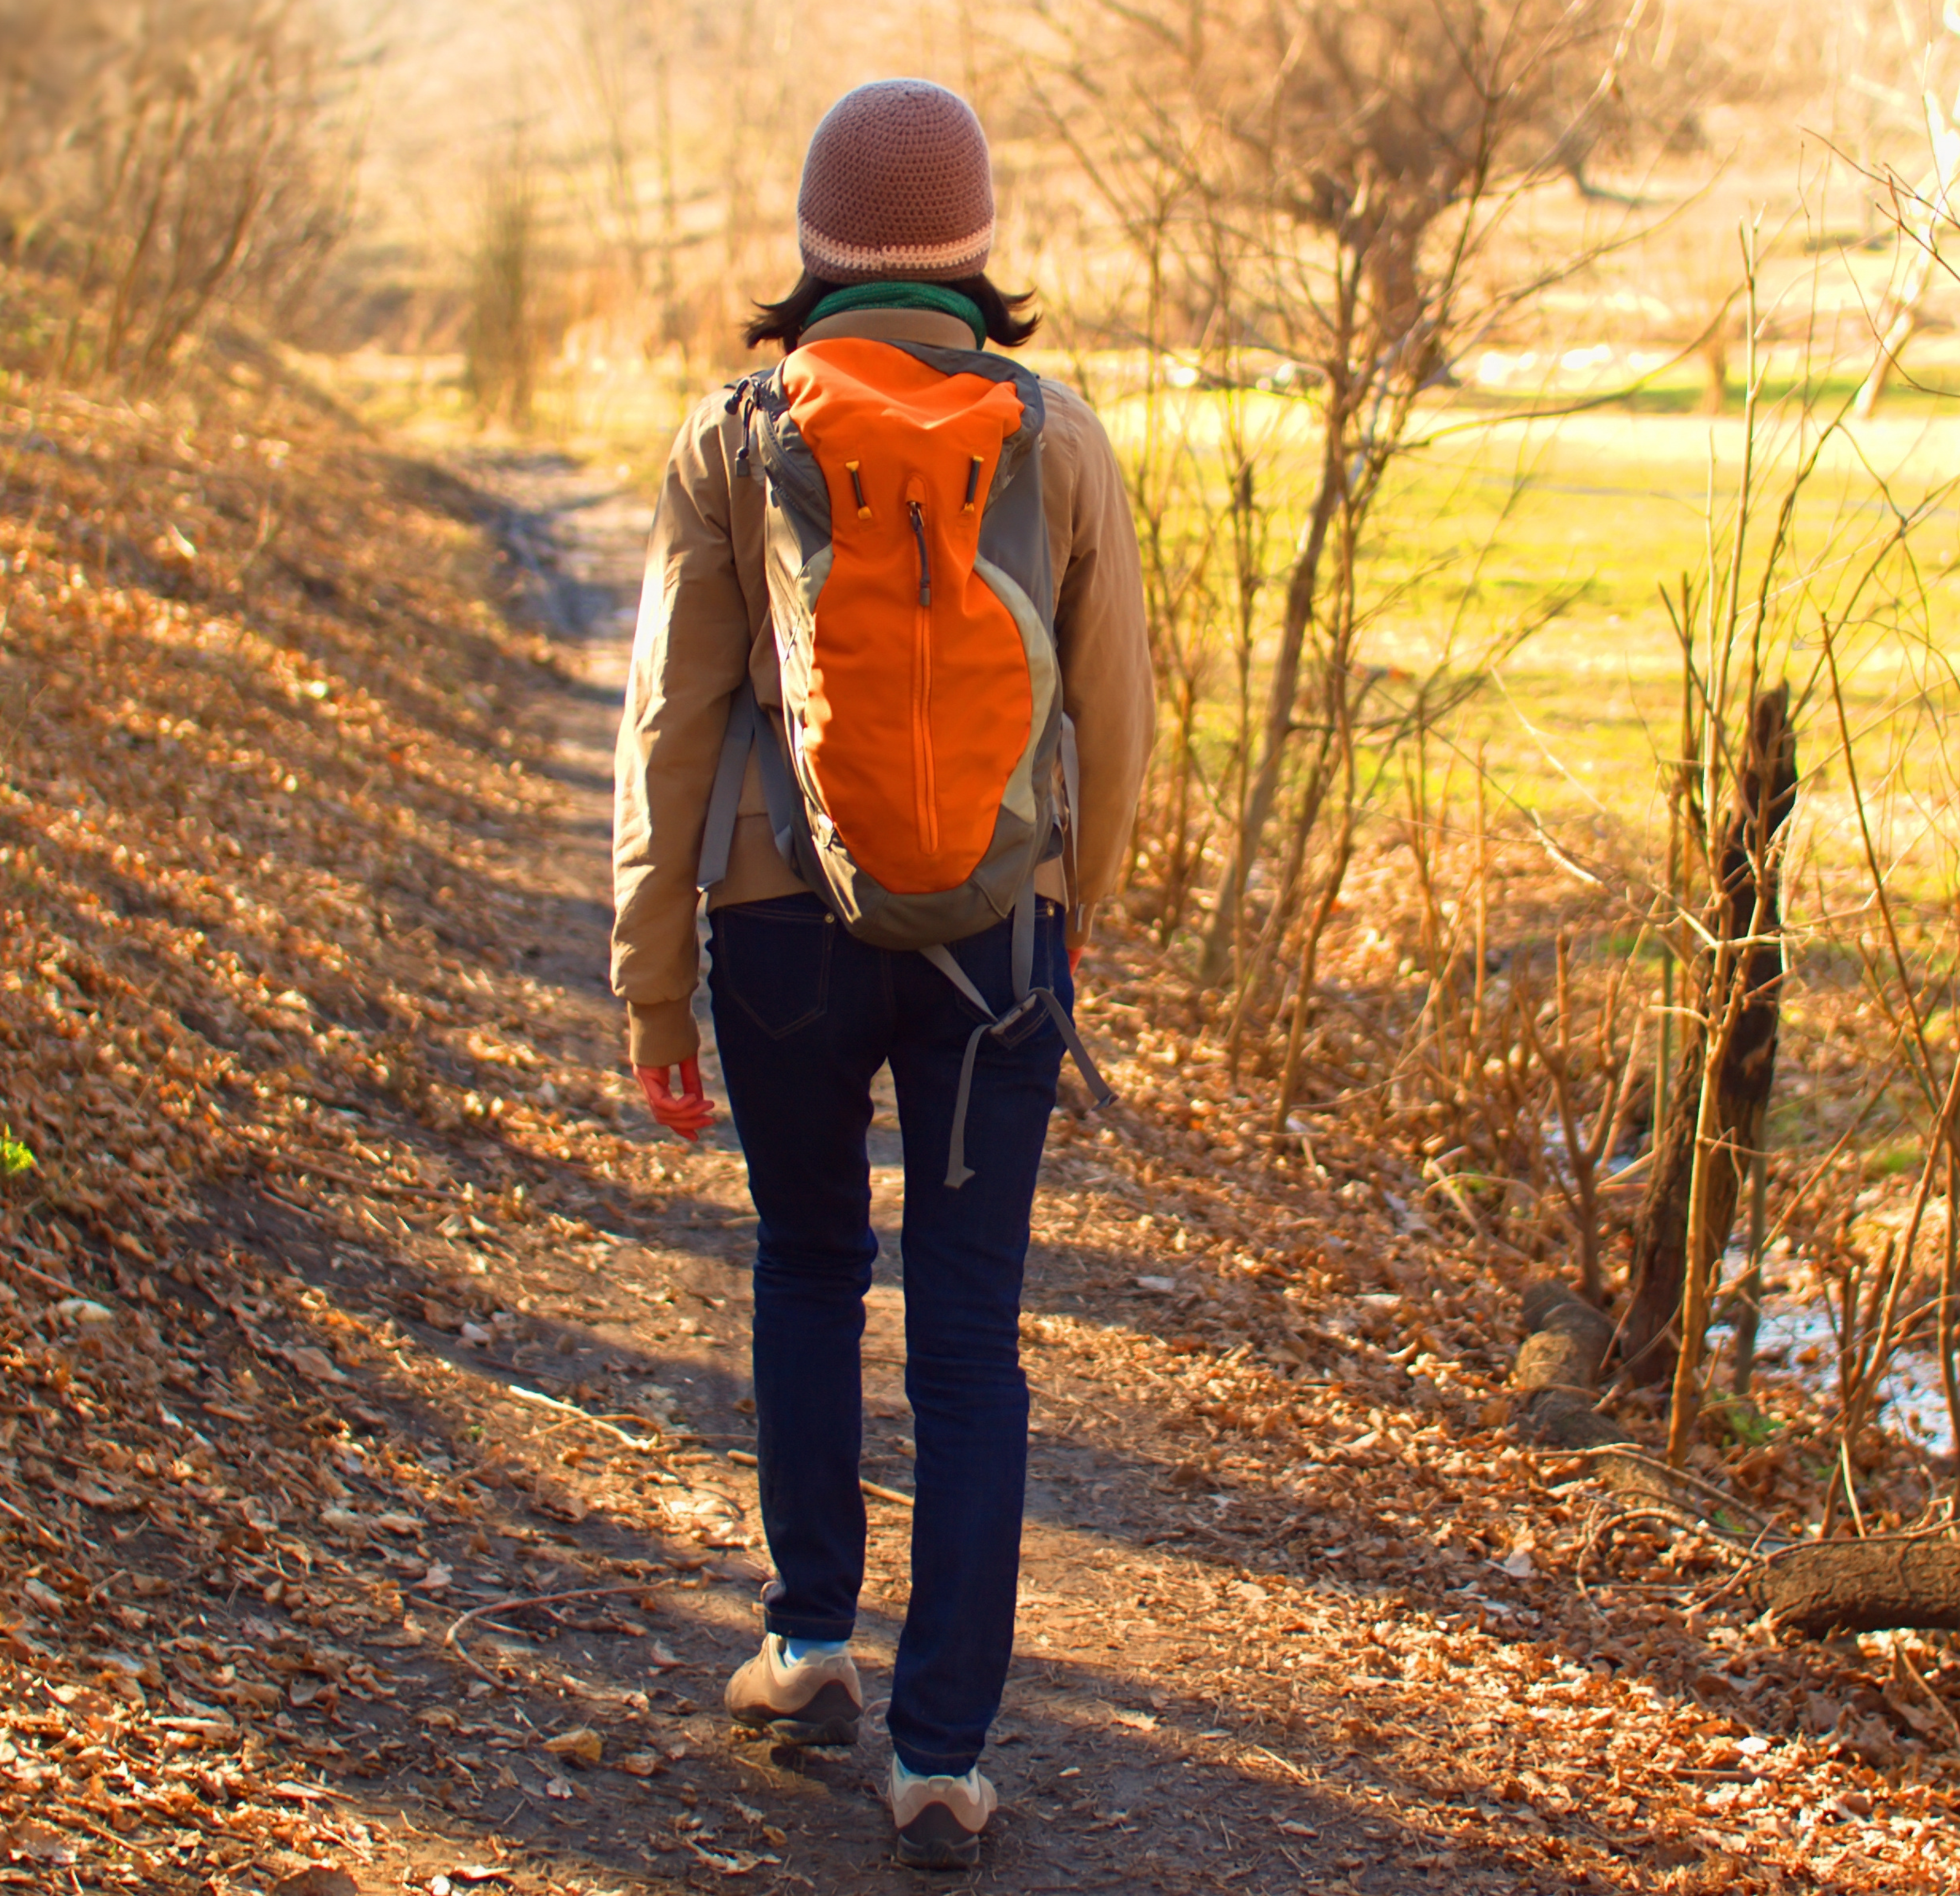 Self Care - Walking with the Beauty Buddy